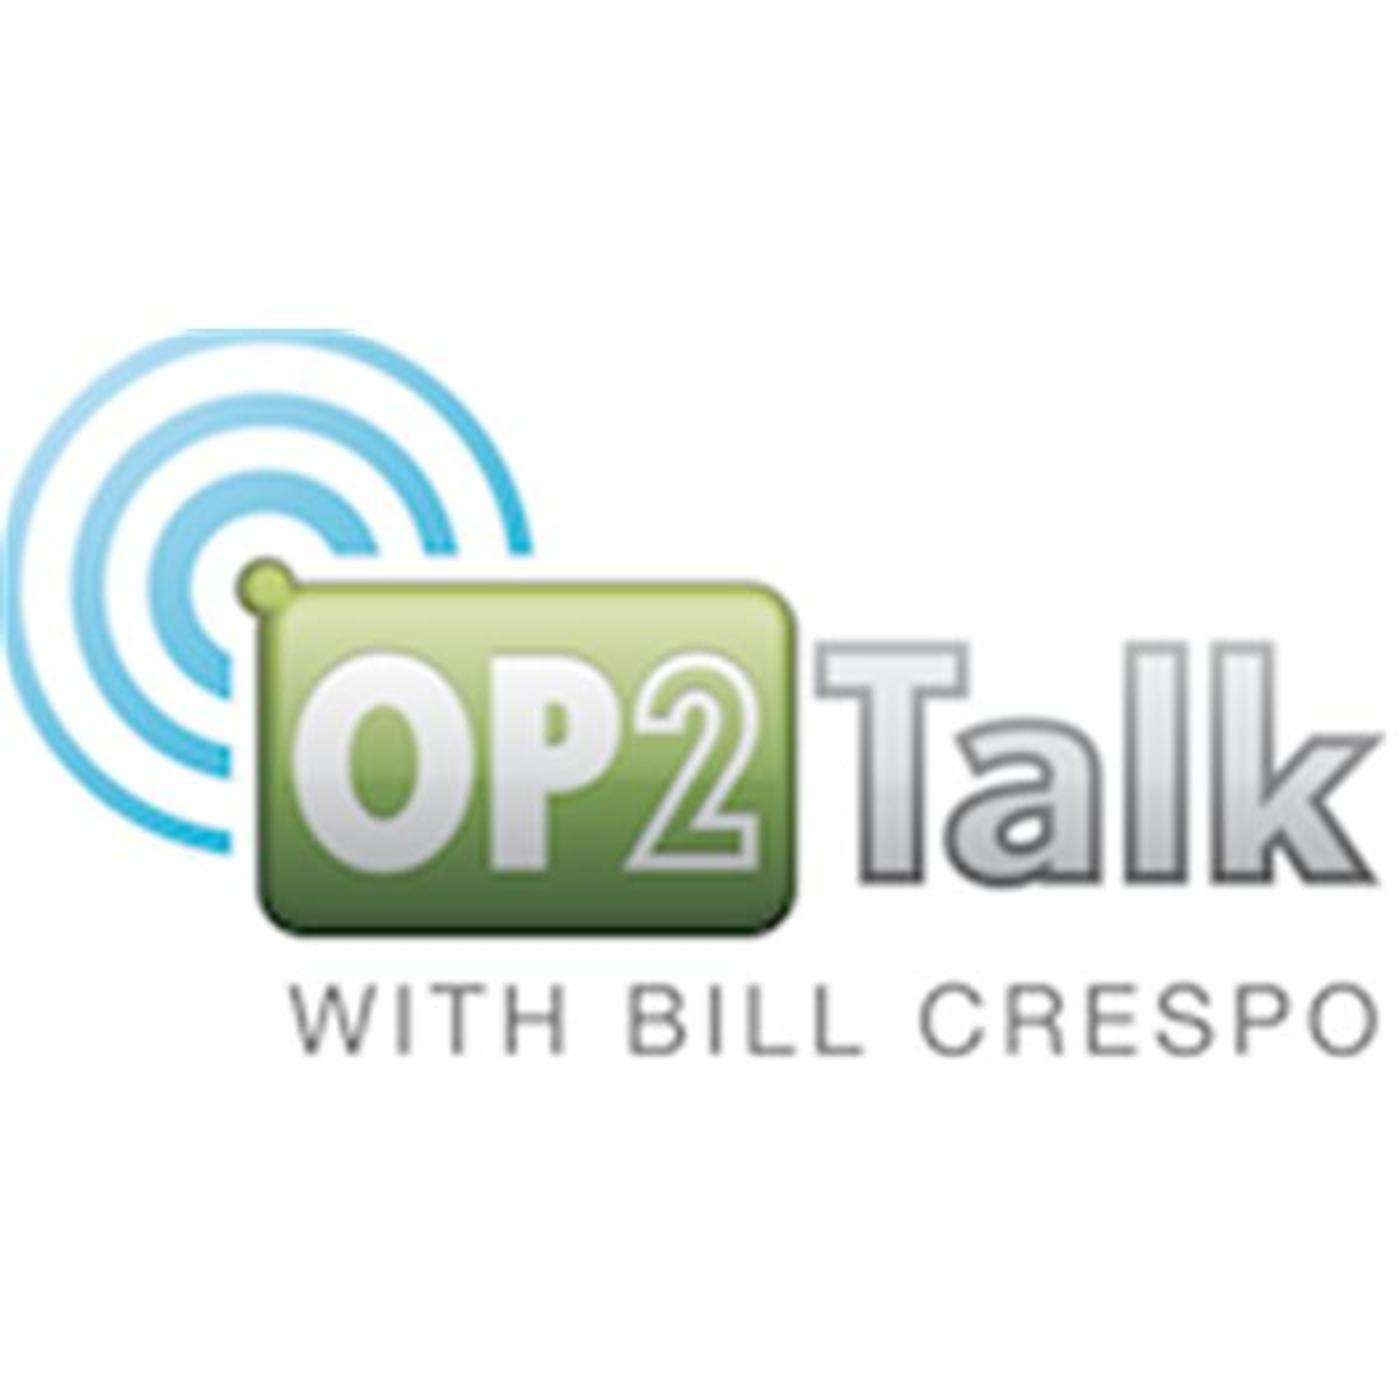 OP2 Talk with Bill Crespo